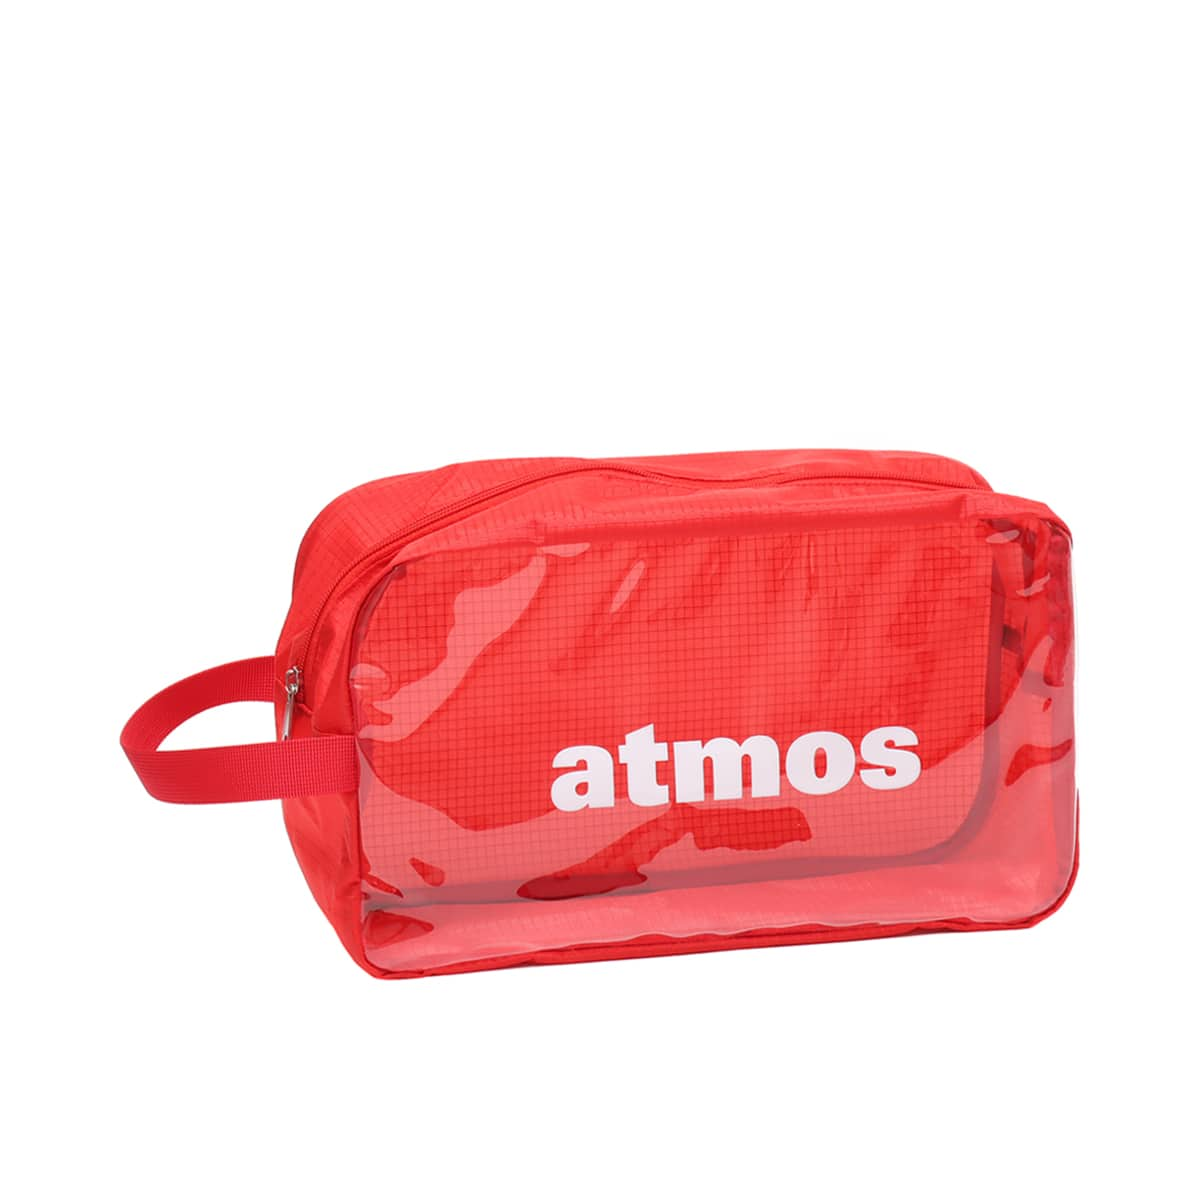 atmos CLEAR SHOES CASE RED 21SP-I_photo_large